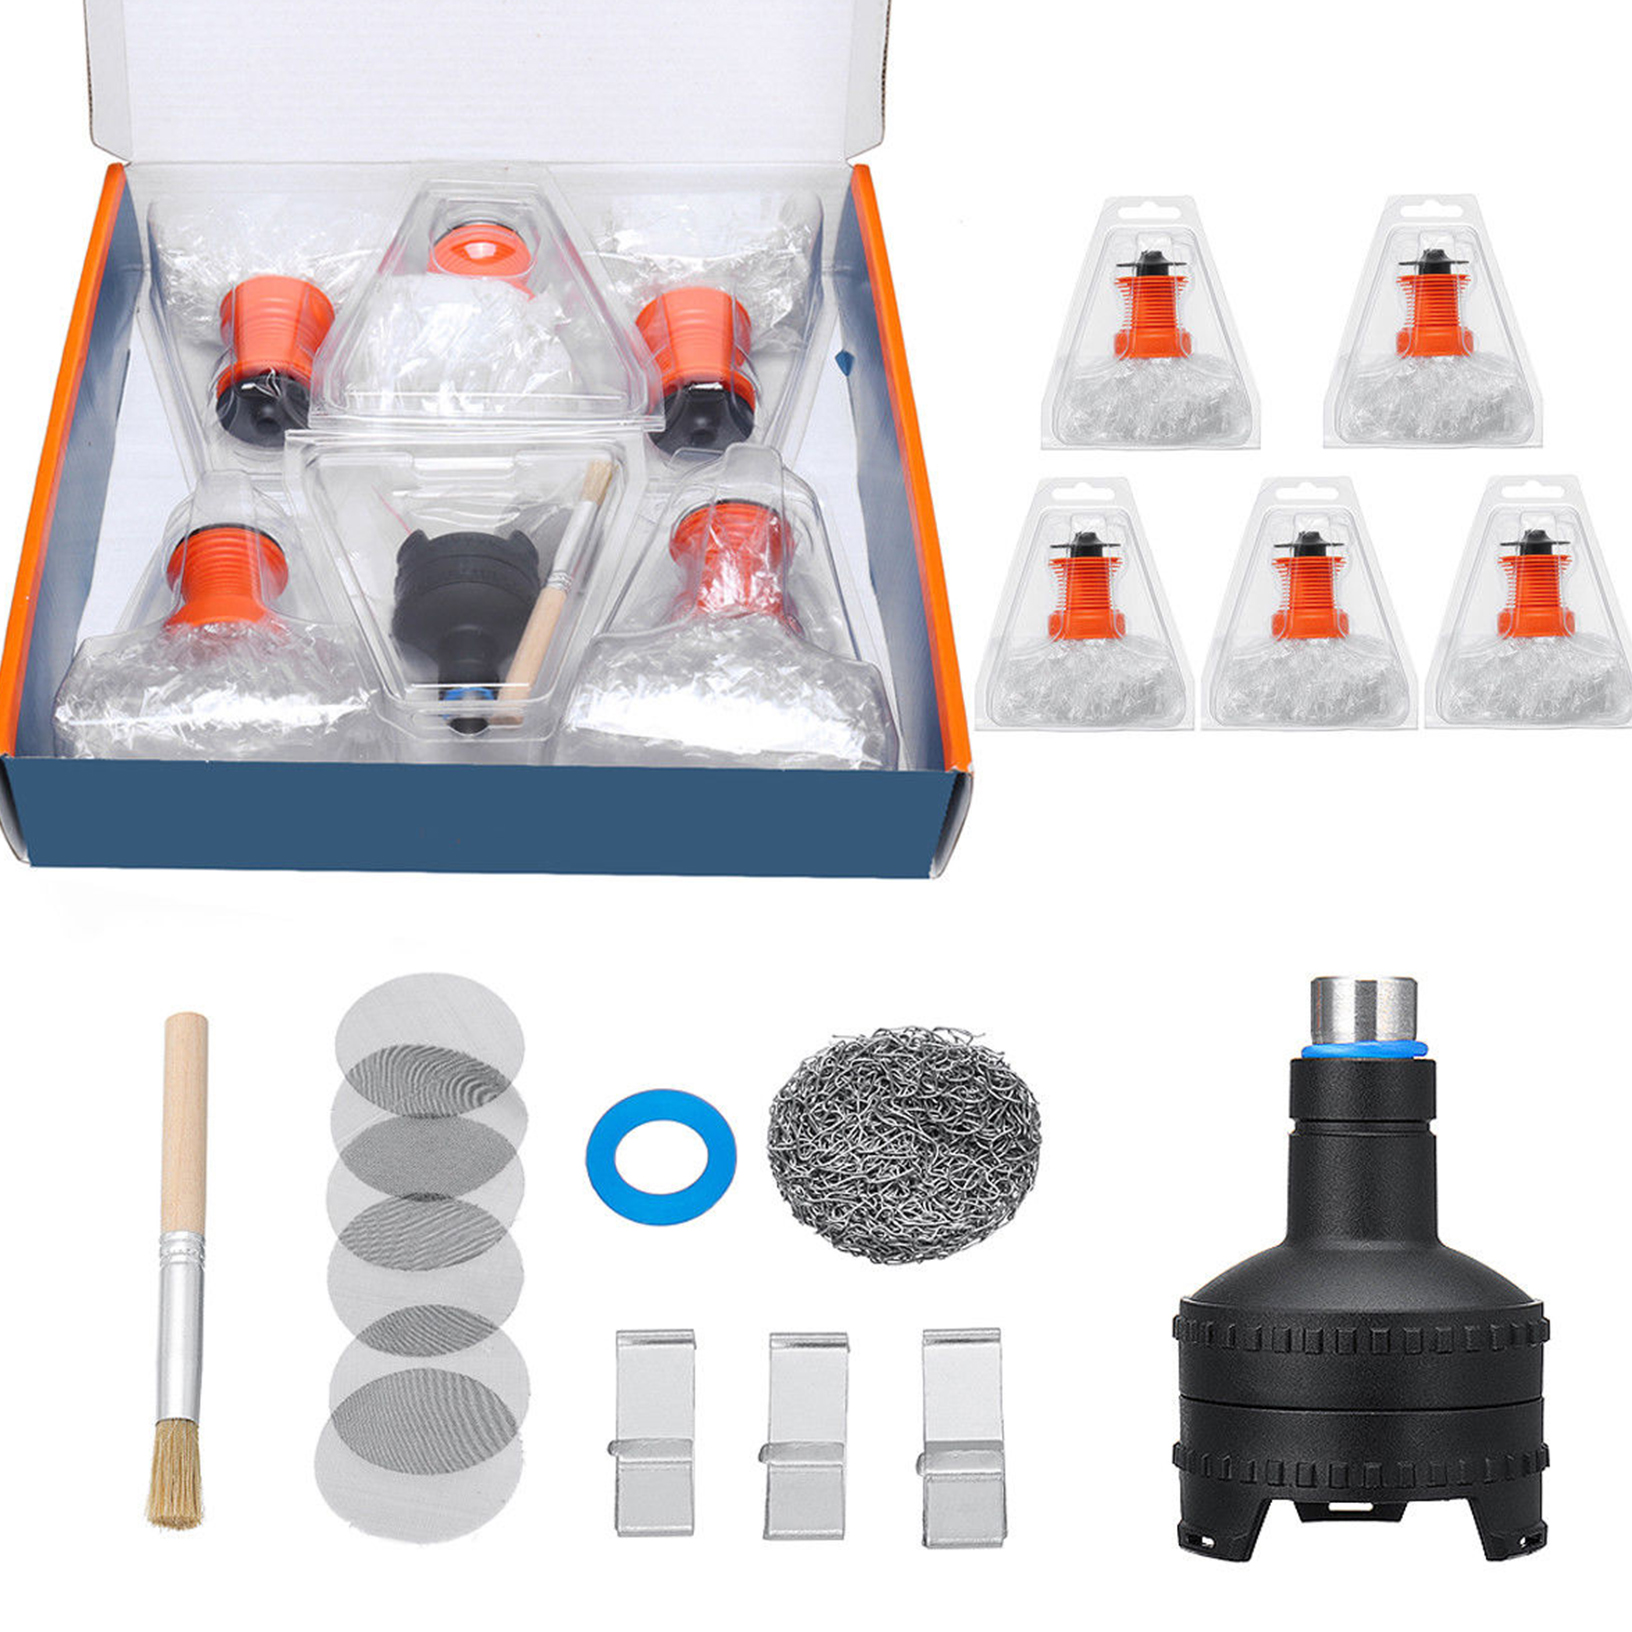 Replacement For Volcano Easy Valve Starter Kit Set Heat Filling Chamber Balloon